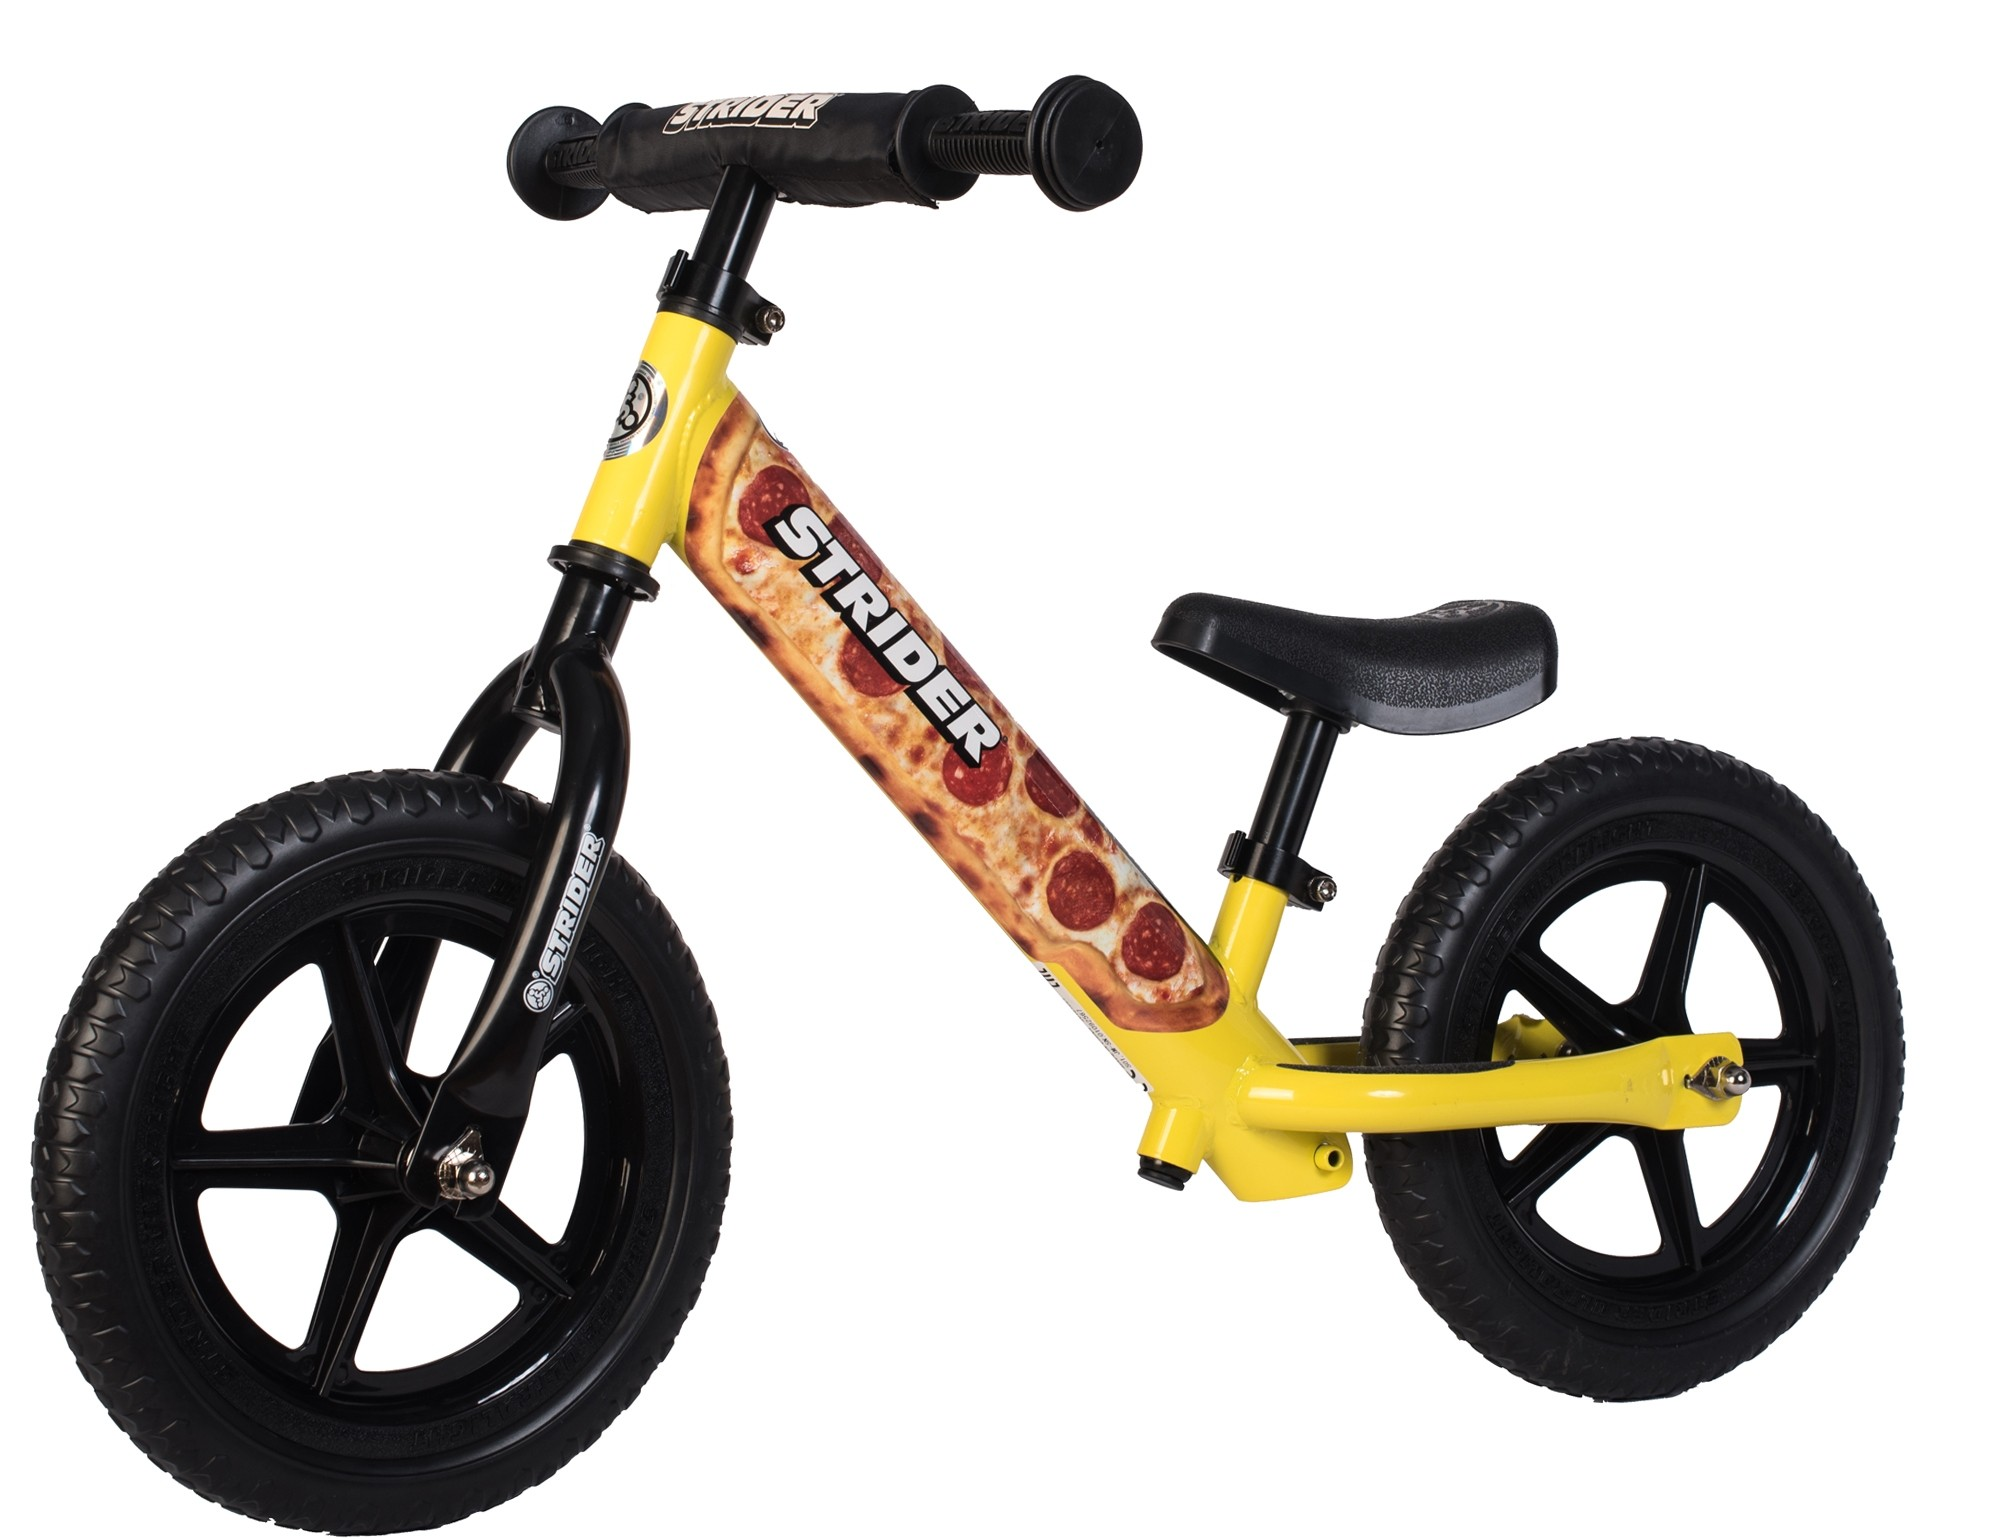 Invigorating Strider Sport Kids Balance Bike Youth No Pedal Bicycle Toddler Extreme Motor Sales Strider Sport Kids Balance Bike Youth No Pedal Balance Bike Toddler Toys R Us Balance Bike Toddler Amazo baby Balance Bike Toddler